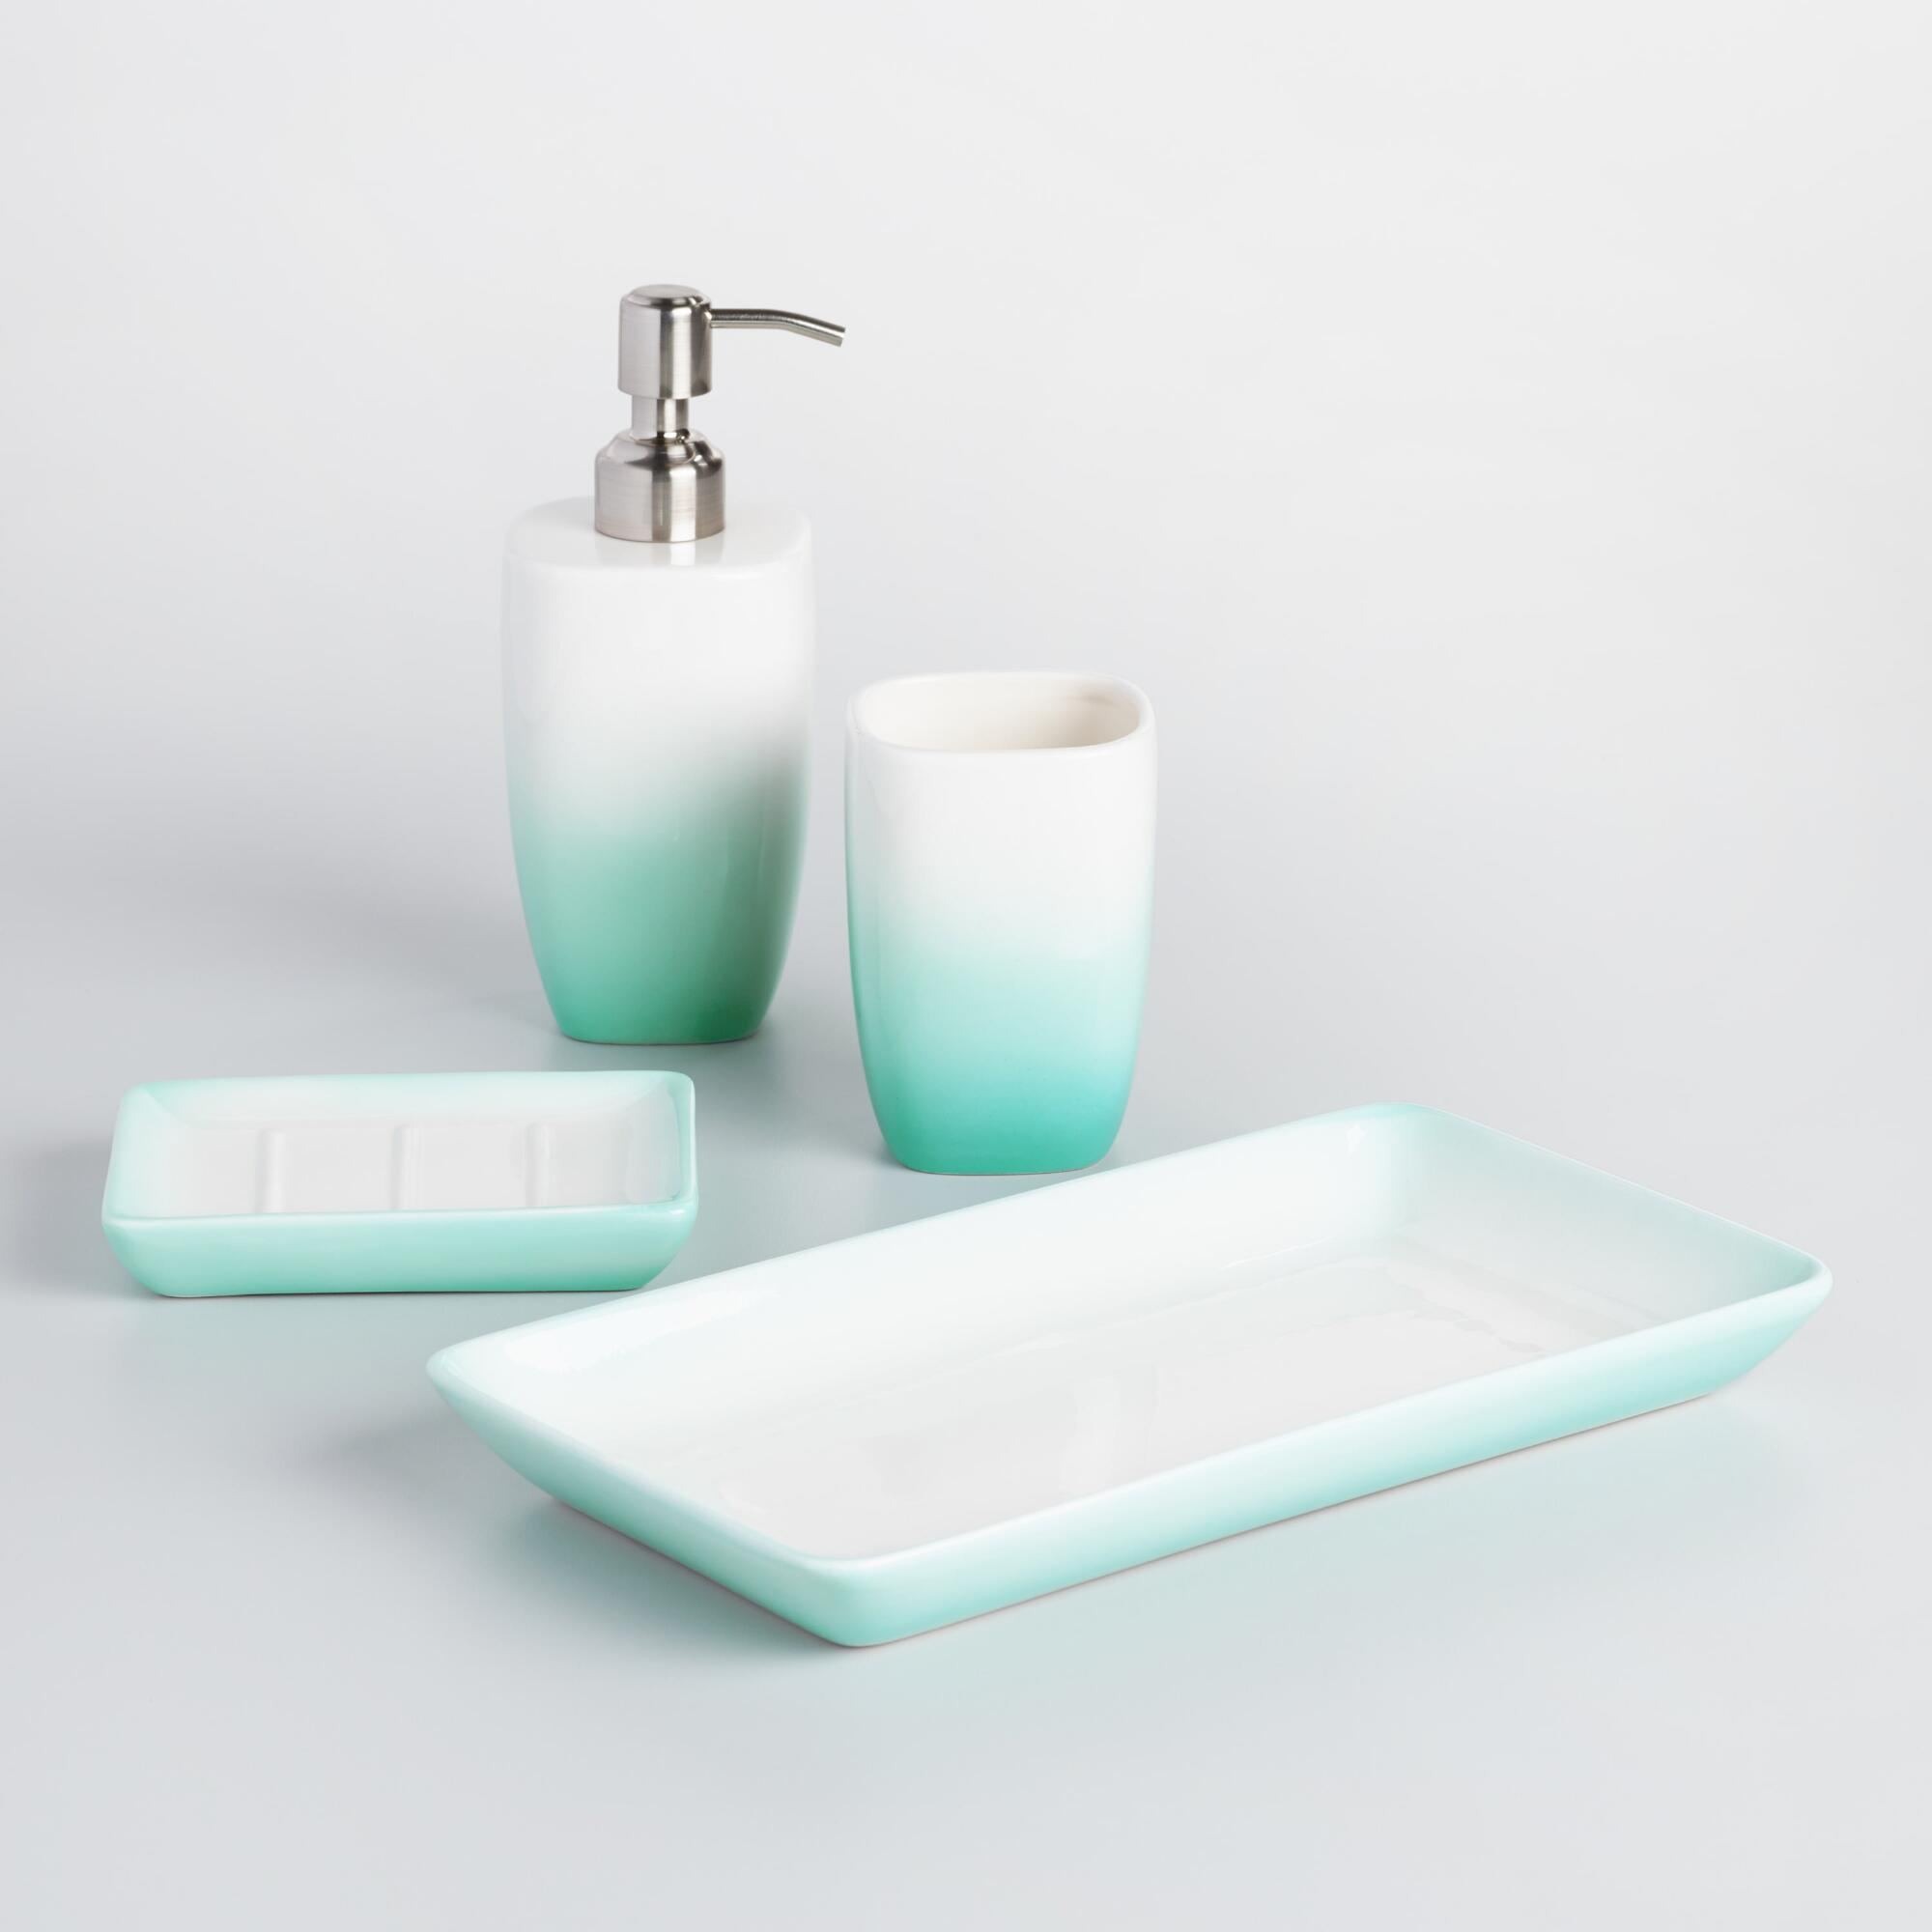 Aqua ombre ceramic bath accessories collection world market for Ceramic bath accessories